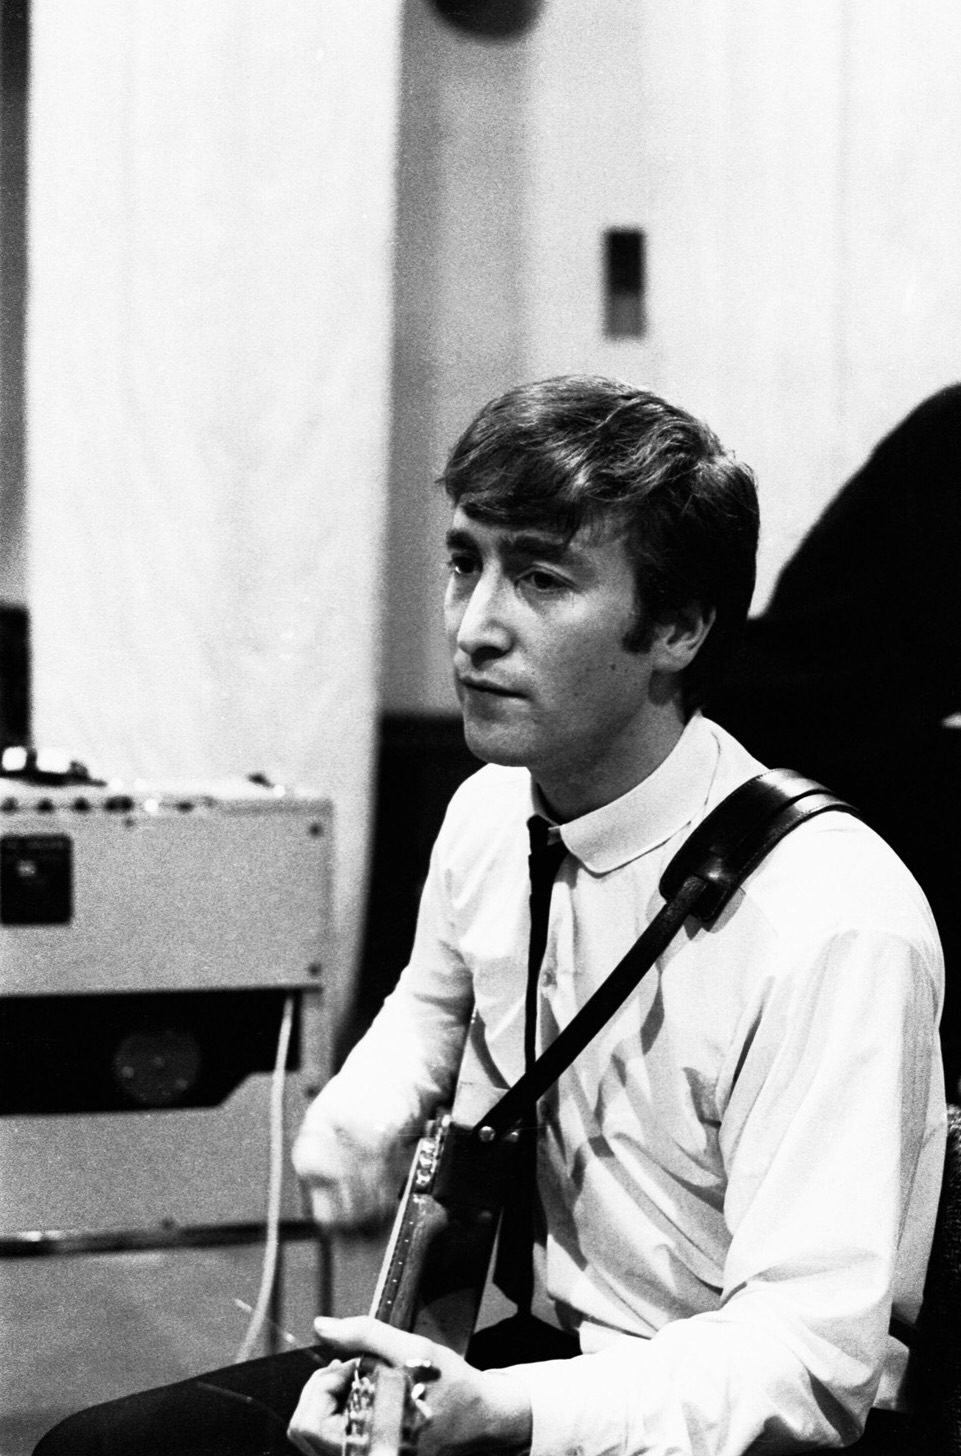 John Lennon at an early Abbey Road recording session, September 4th, 1962.